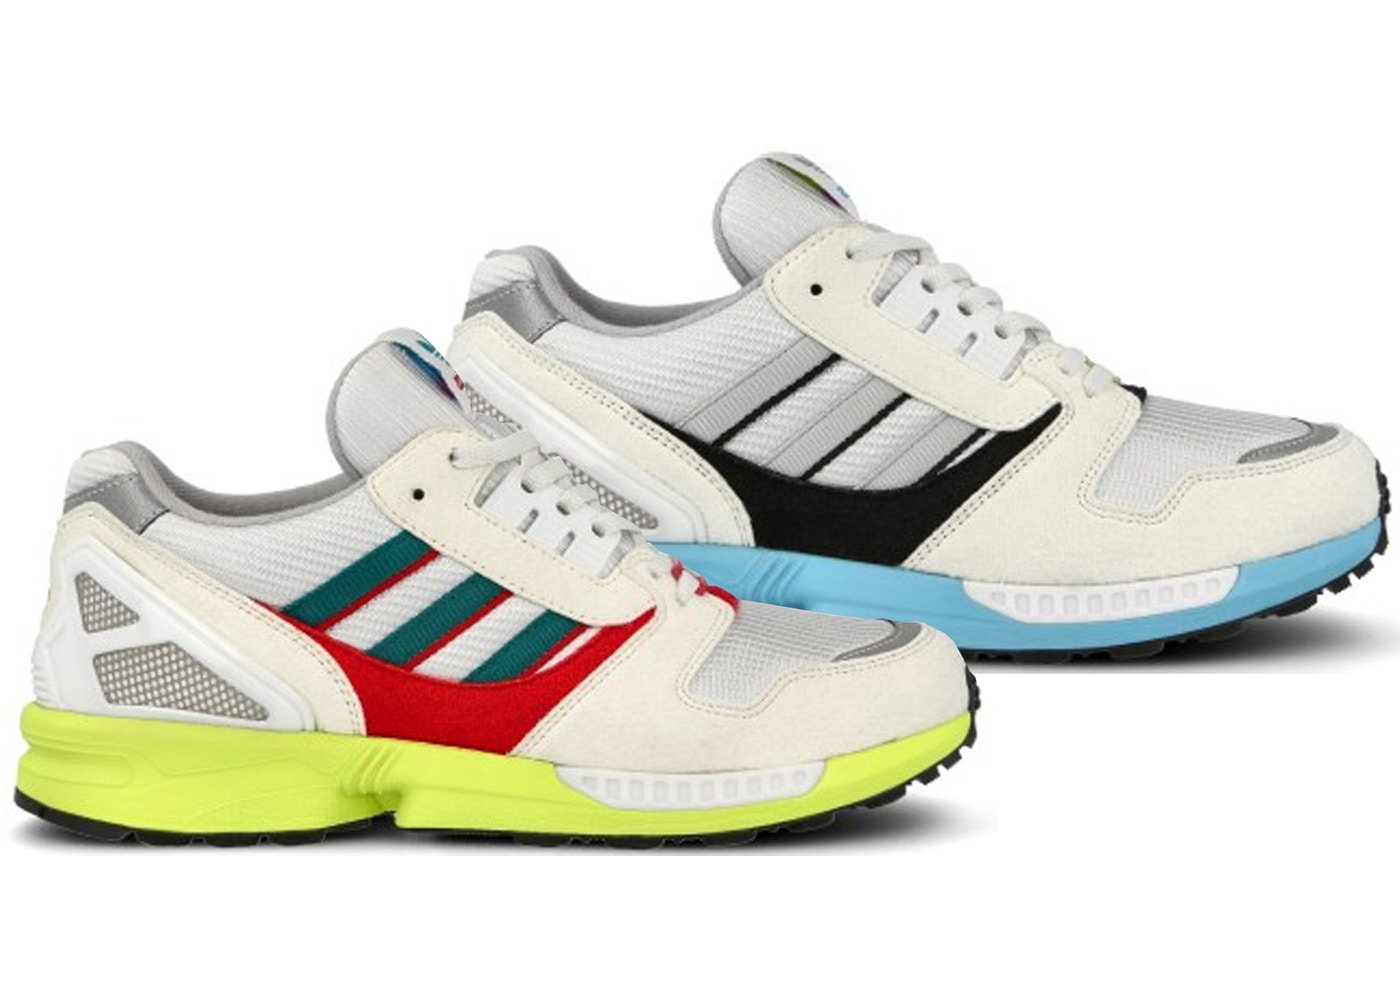 メンズ靴, スニーカー  ADIDAS ZX8000 OVERKILL NO WALLS NEEDED PACK MULTI